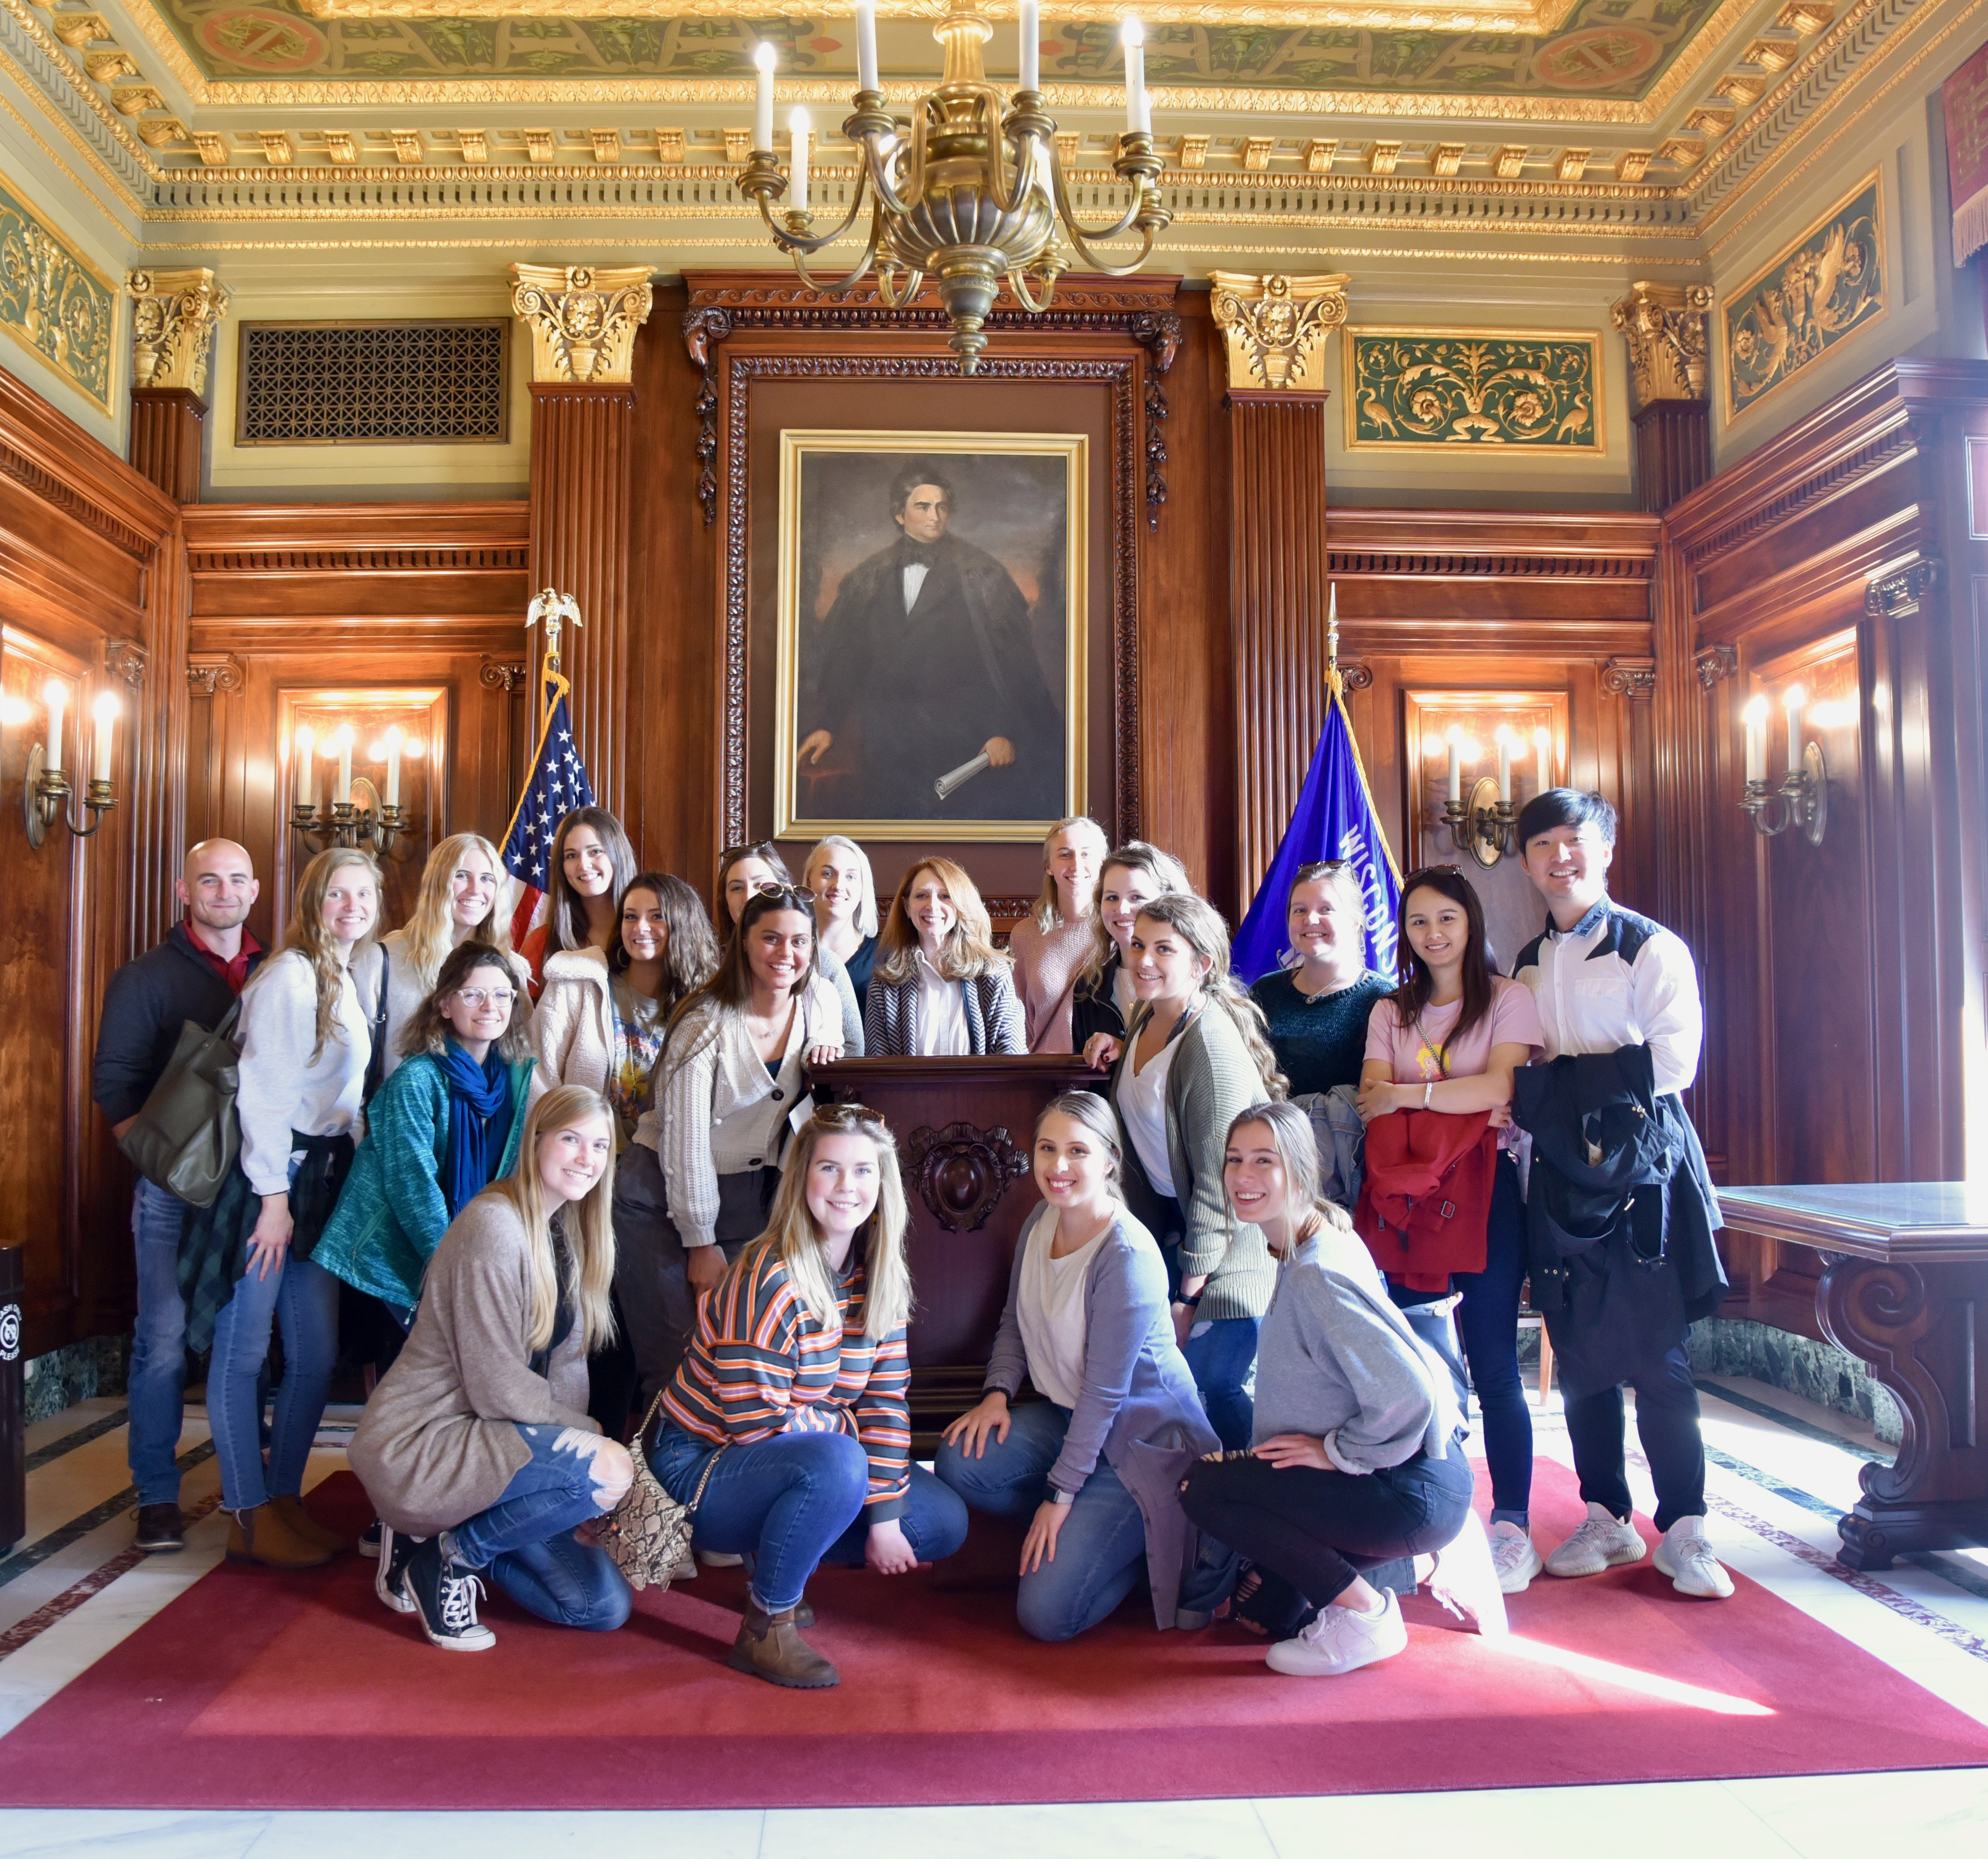 ARTID 569D: Preservation students with Diane Al Shihabi, associate professor of interior design, standing behind the lectern she designed for the Senate Parlor during the Wisconsin State Capitol restoration